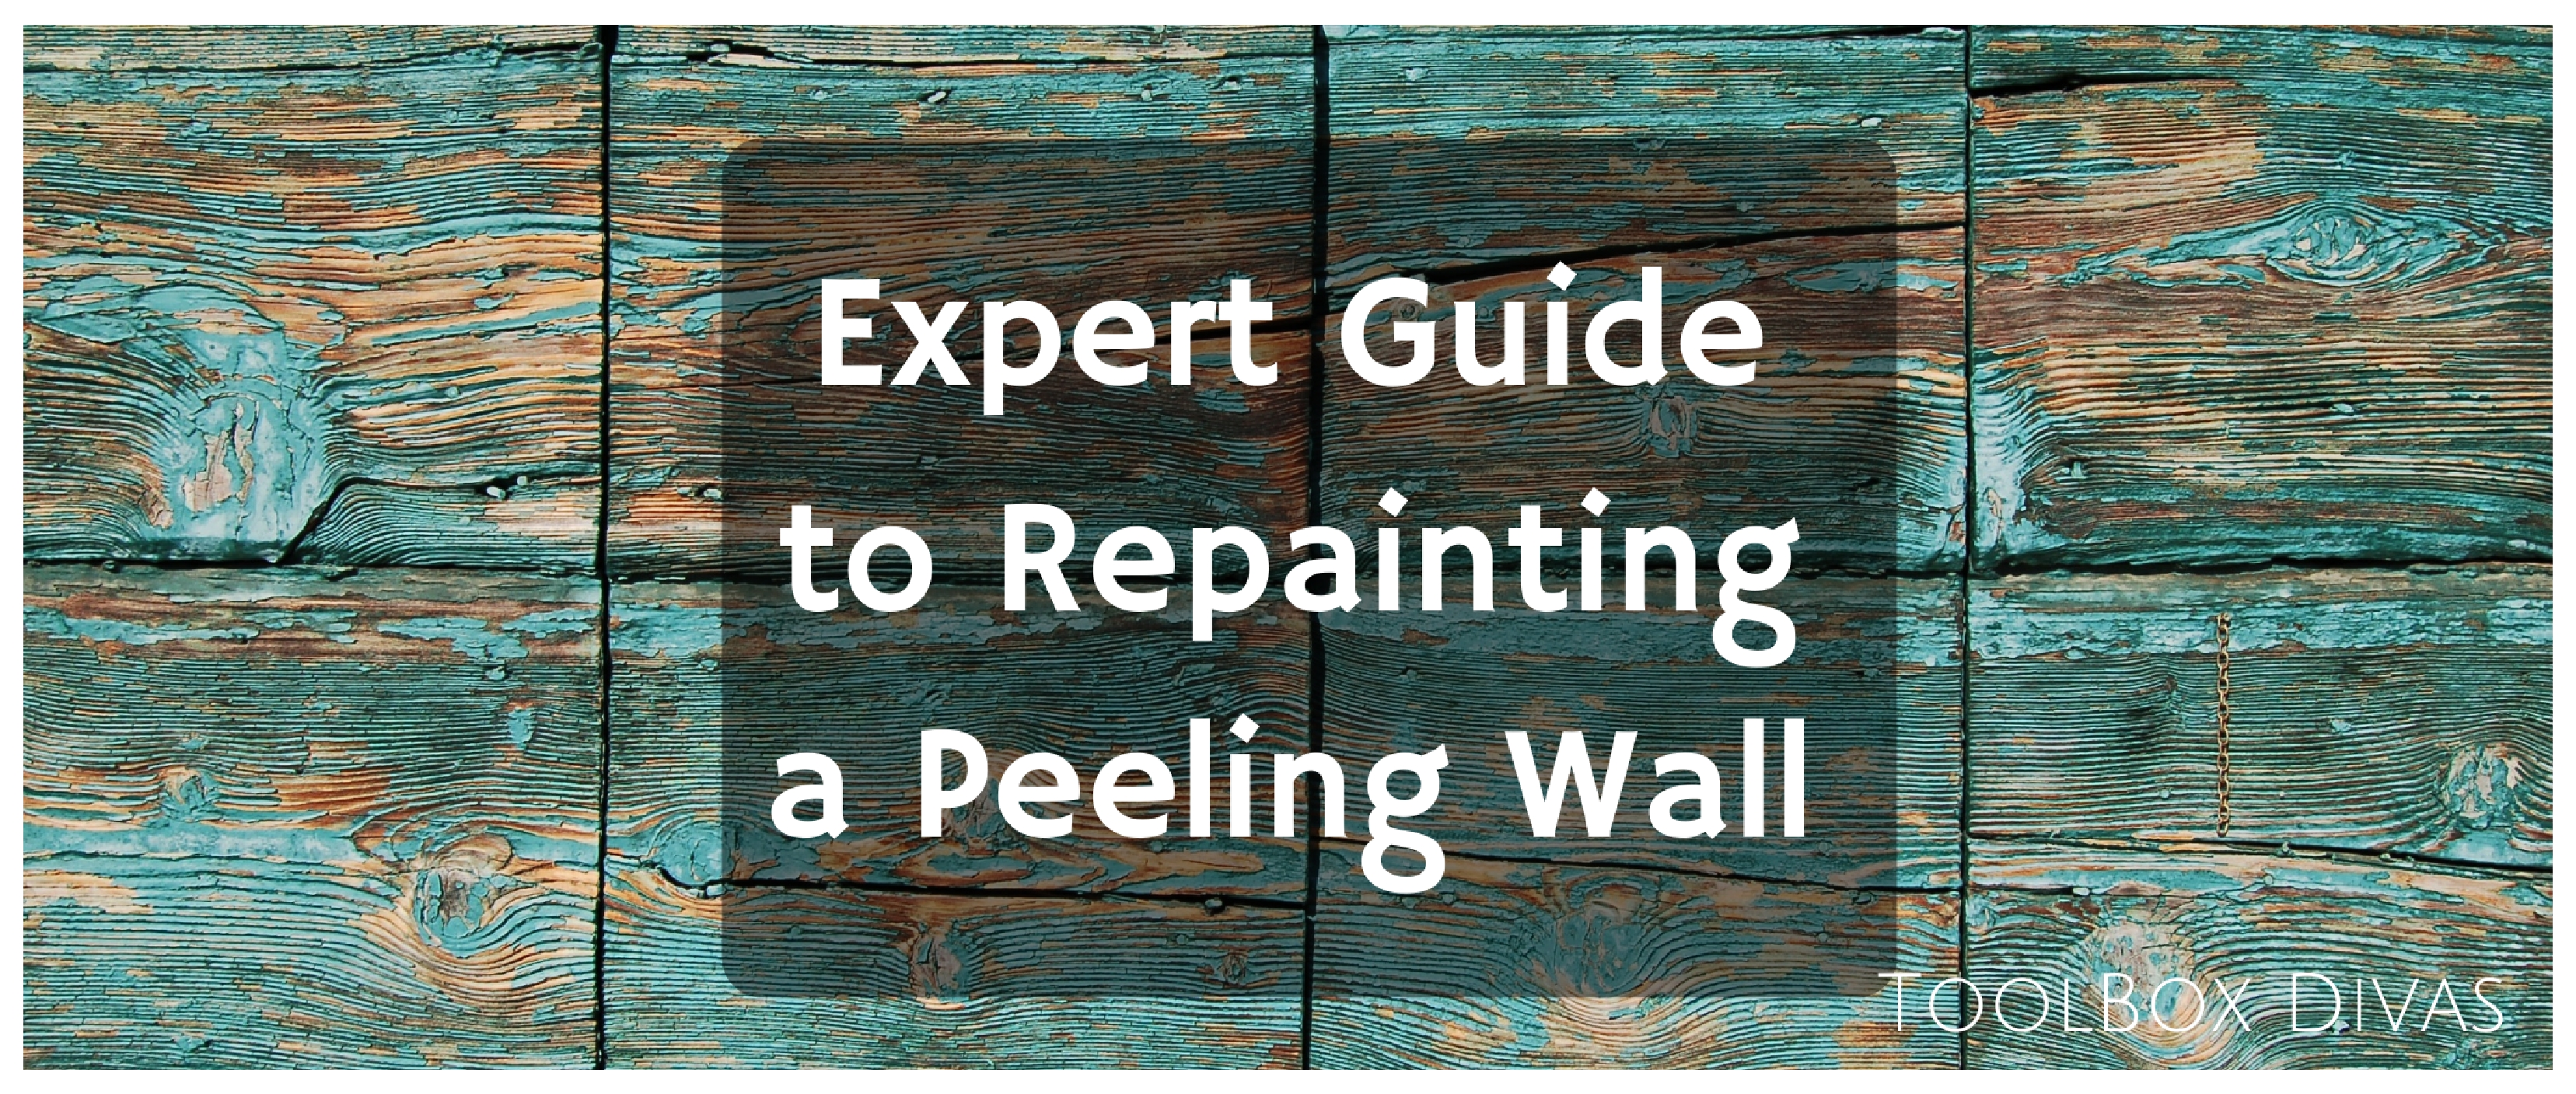 Expert Guide to Repainting a Peeling Wall